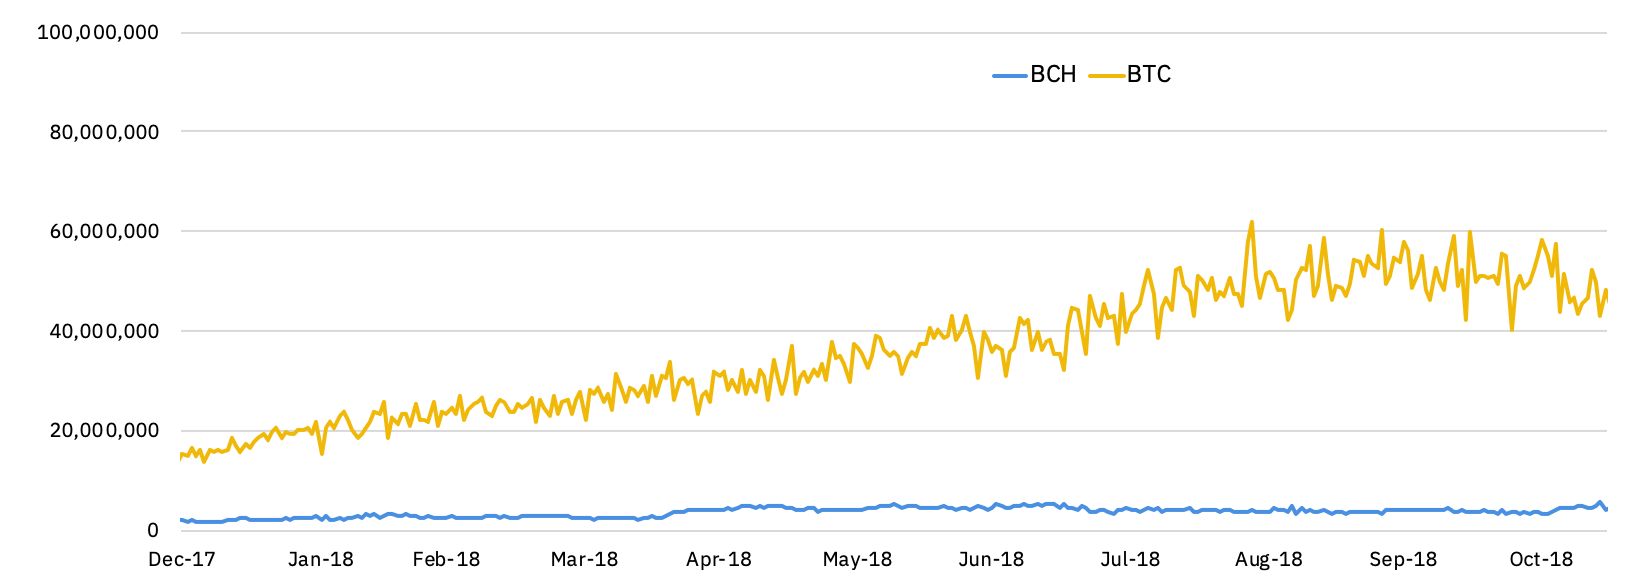 hashrates of BTC and BCH